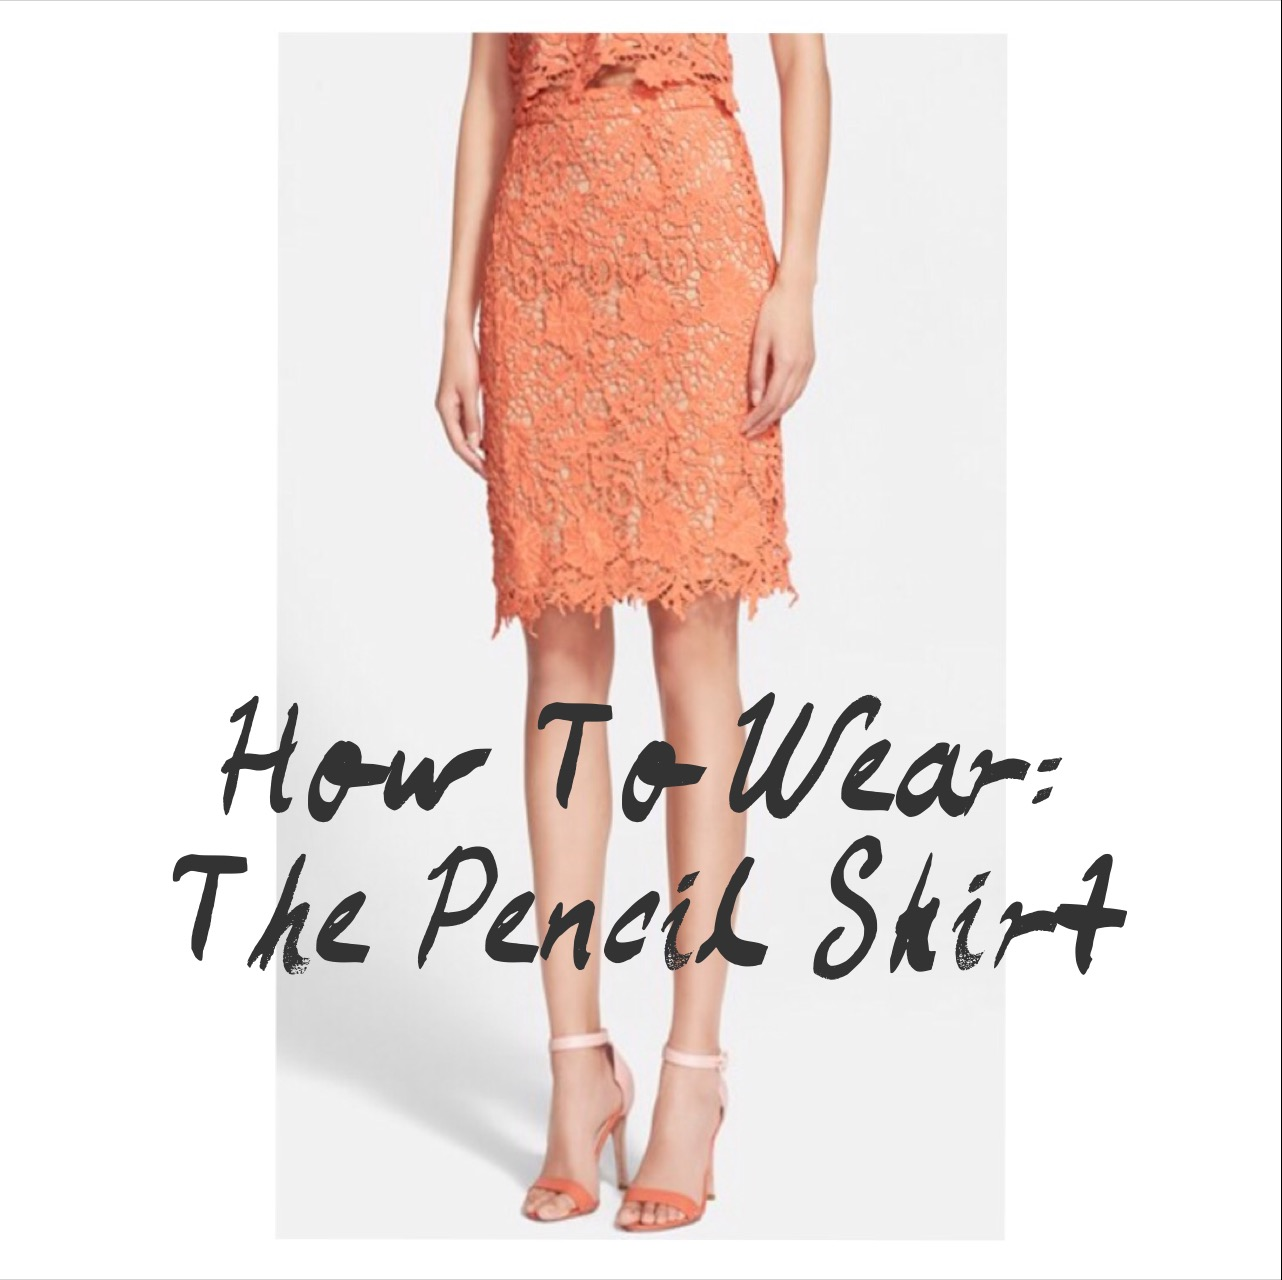 How To Wear: The Pencil Skirt